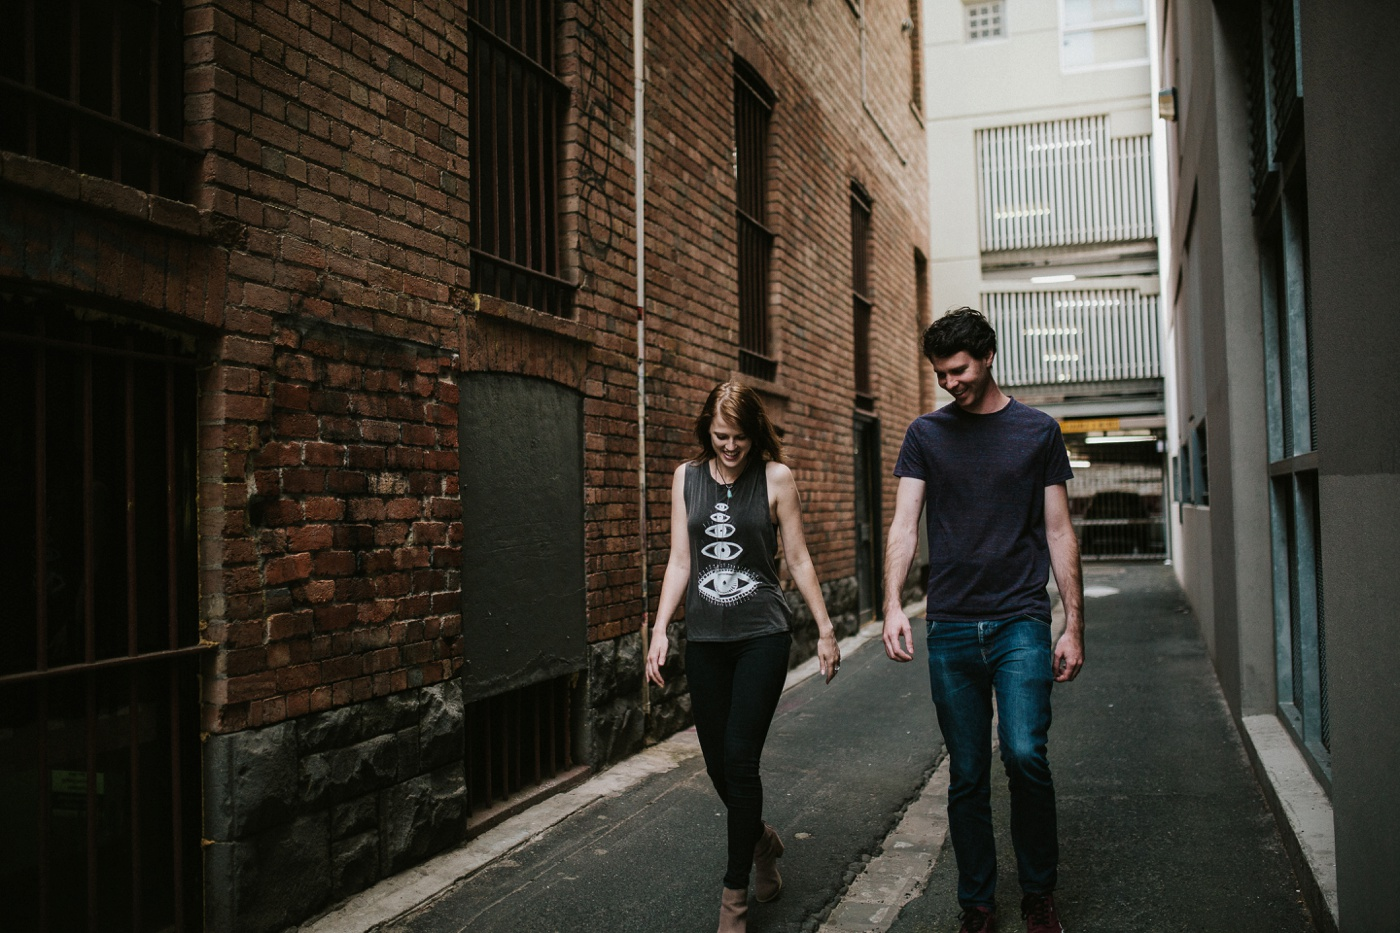 heli-alex_melbourne-fun-candid-gritty-relaxed-city-urban-couples-engagement-session_melbourne-wedding-photography_1